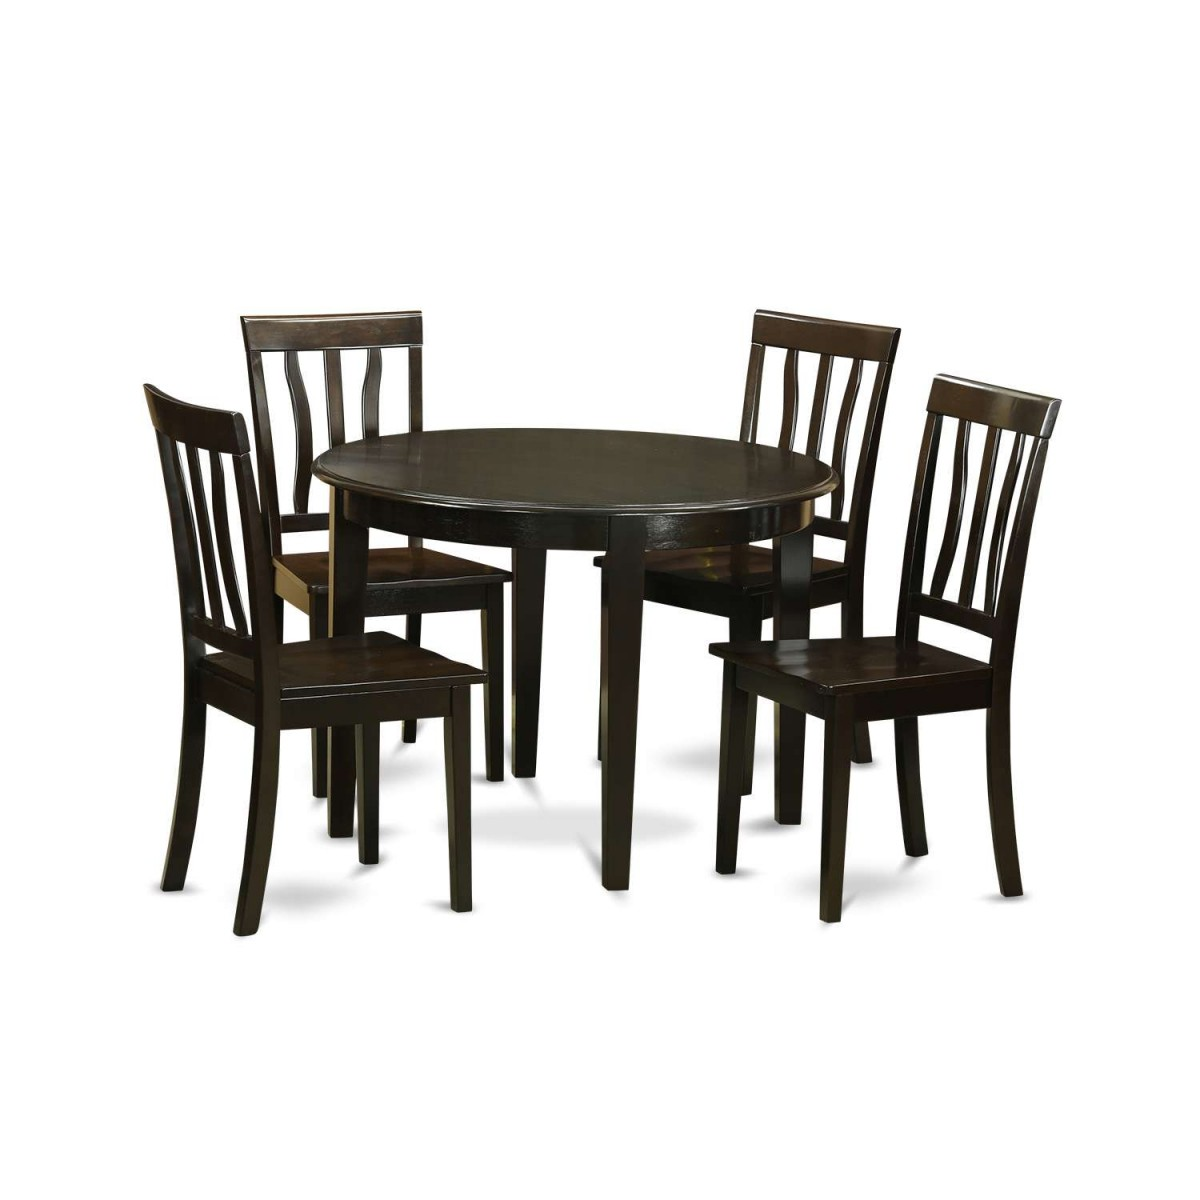 East West Furniture Boston 5 Piece Kitchen Table Set